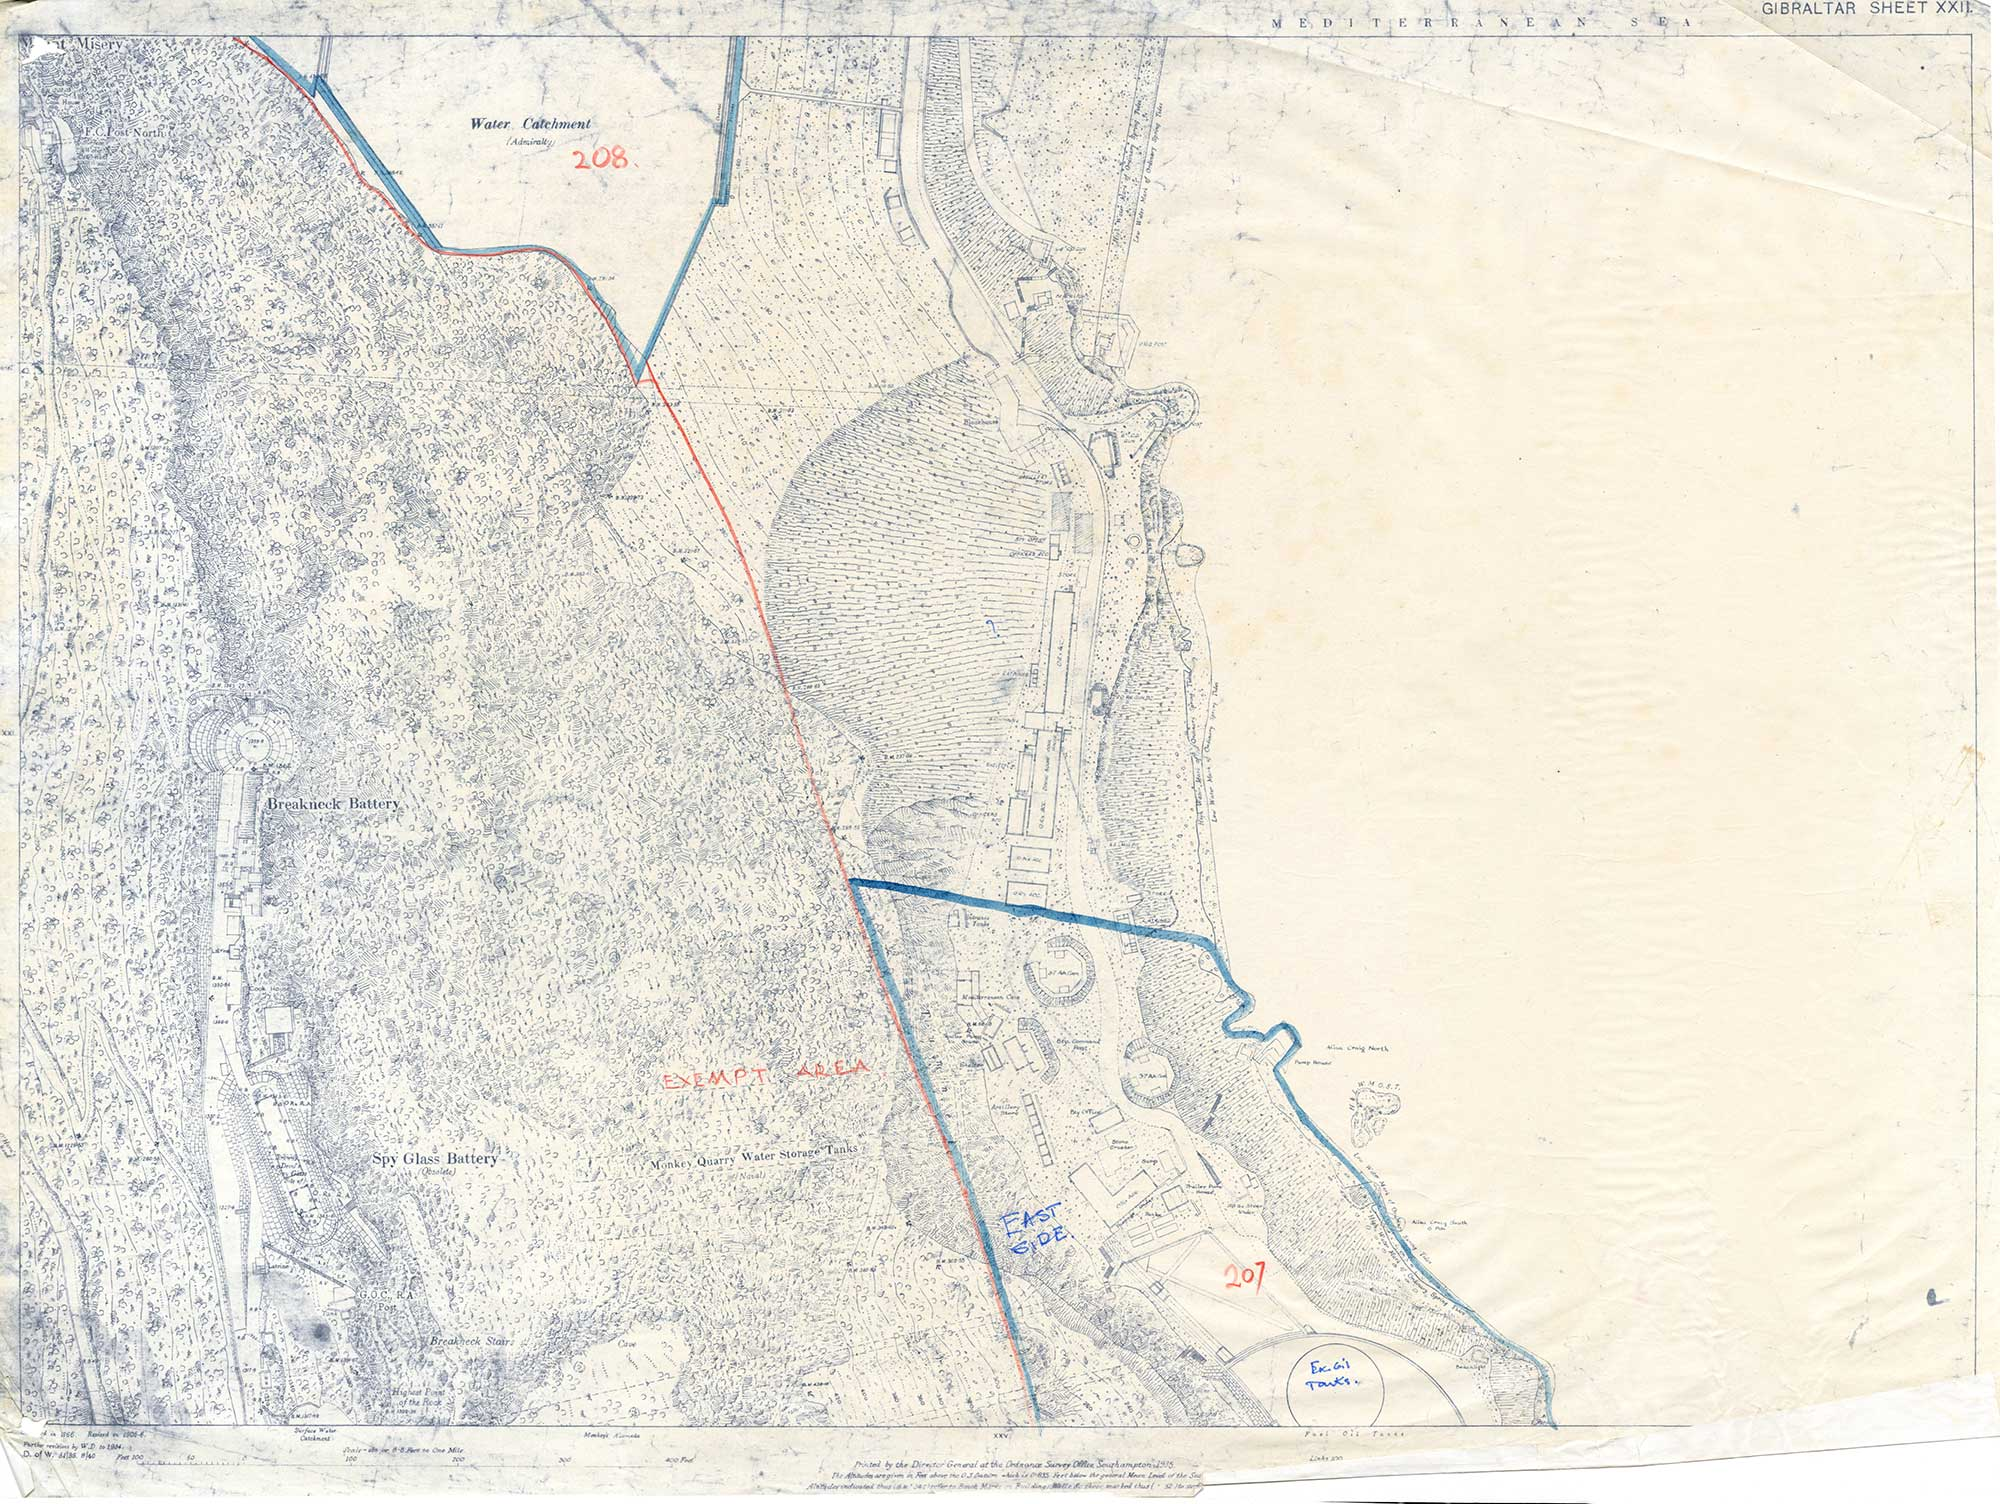 Map-26-OS-Sheet-22-Spyglass-to-Water-Catchment-1931